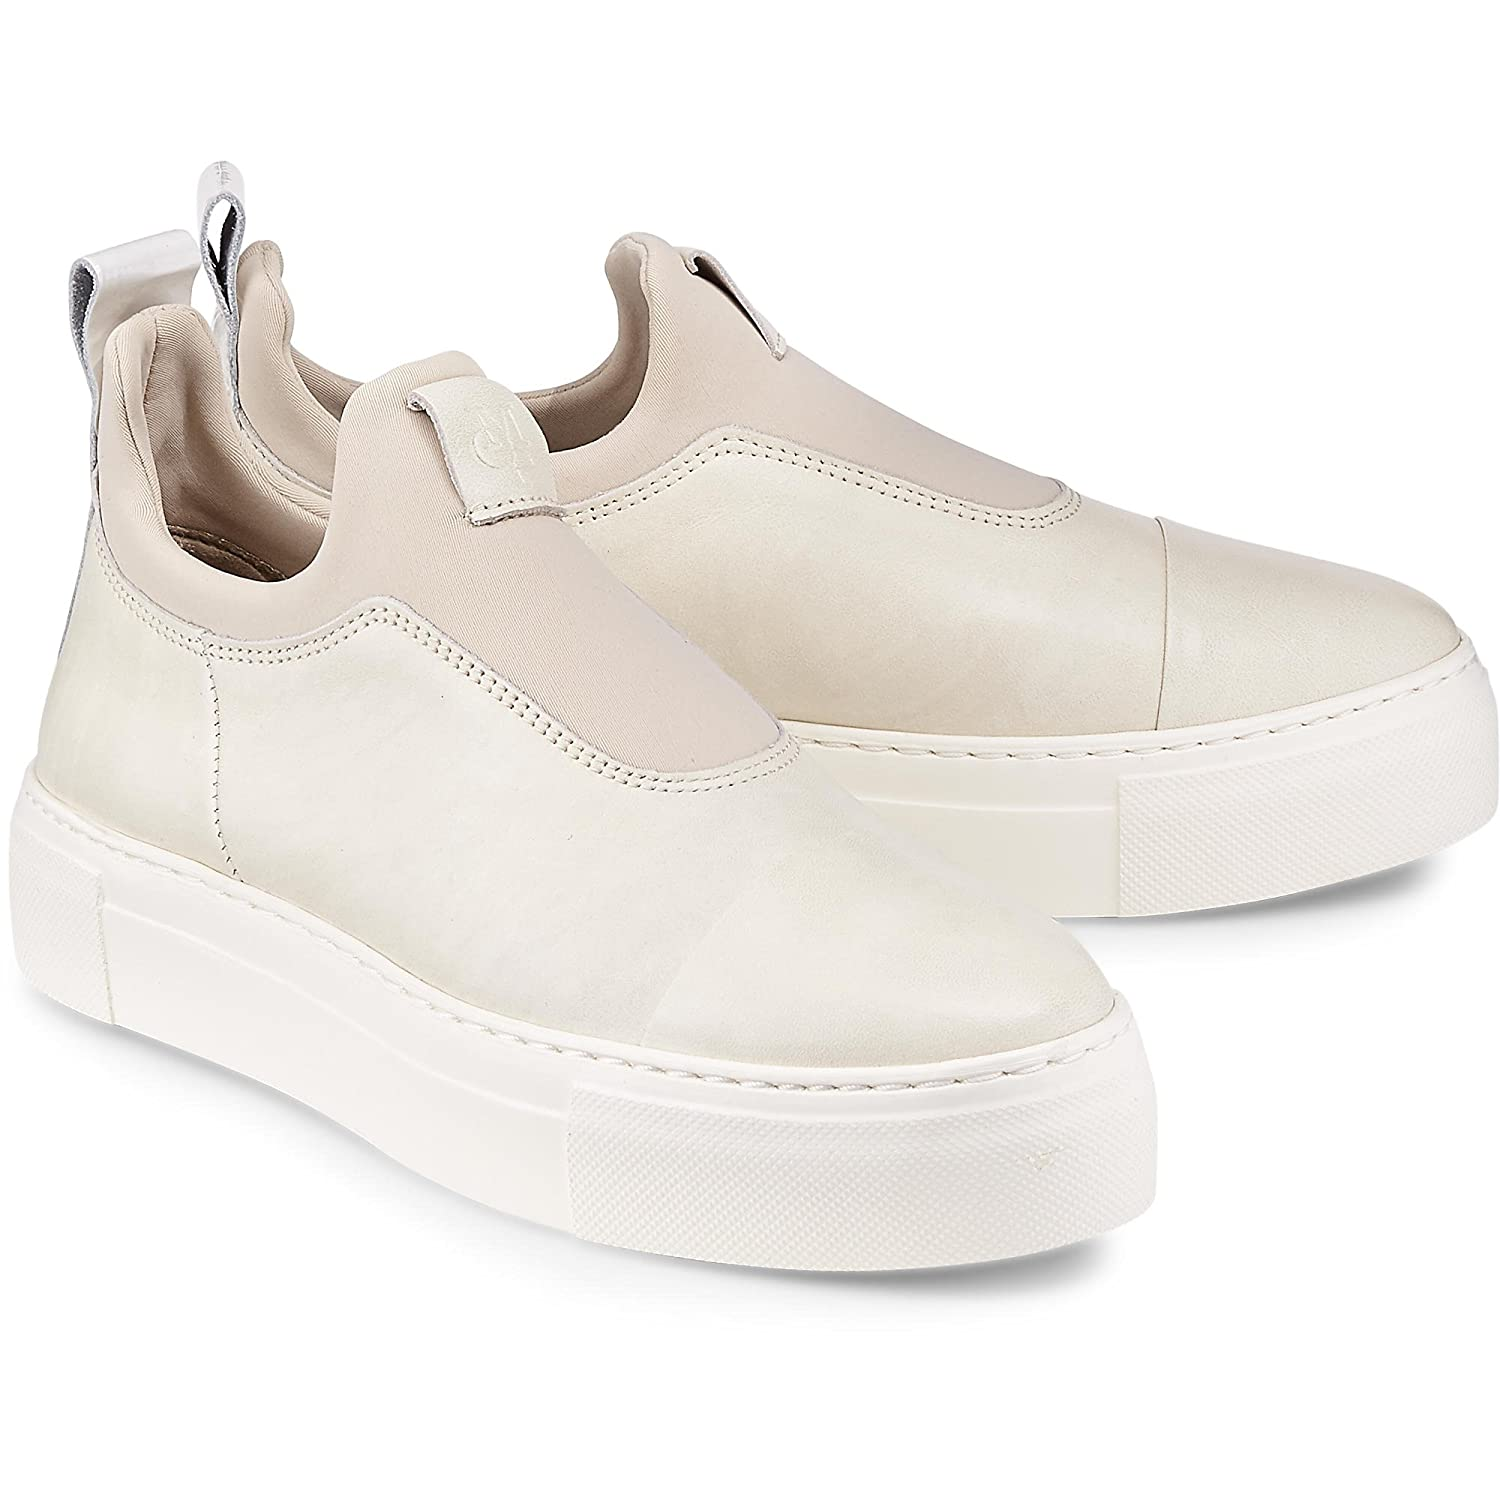 Damen Fashion-Sneaker Beige Glattleder 40 Marc O'Polo